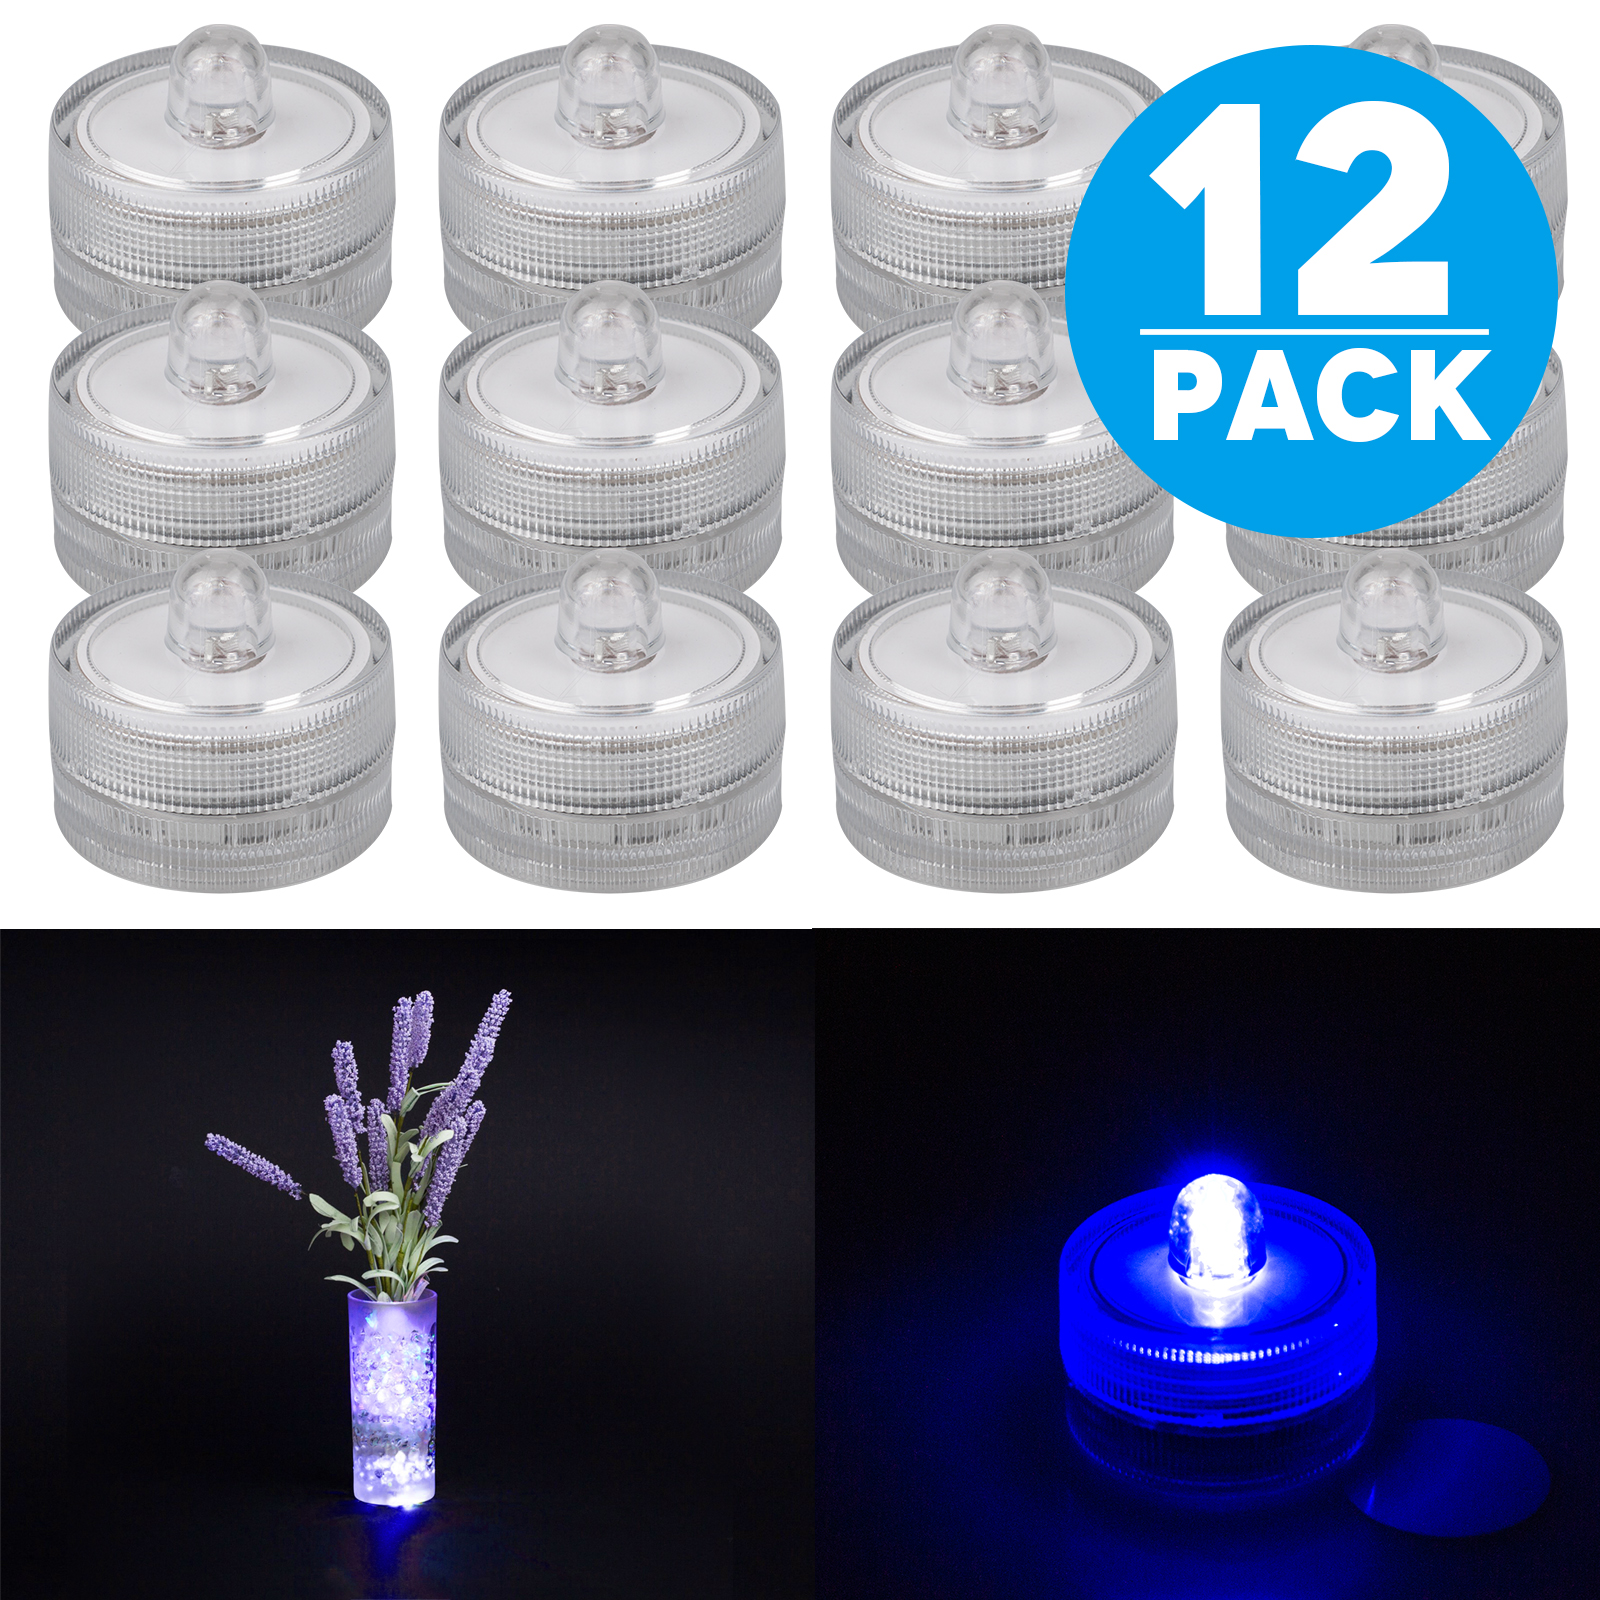 TSV 12pcs Waterproof round battery powered many colors flower mini led candles lights for vases centerpiece Wedding Party decoration (Blue)